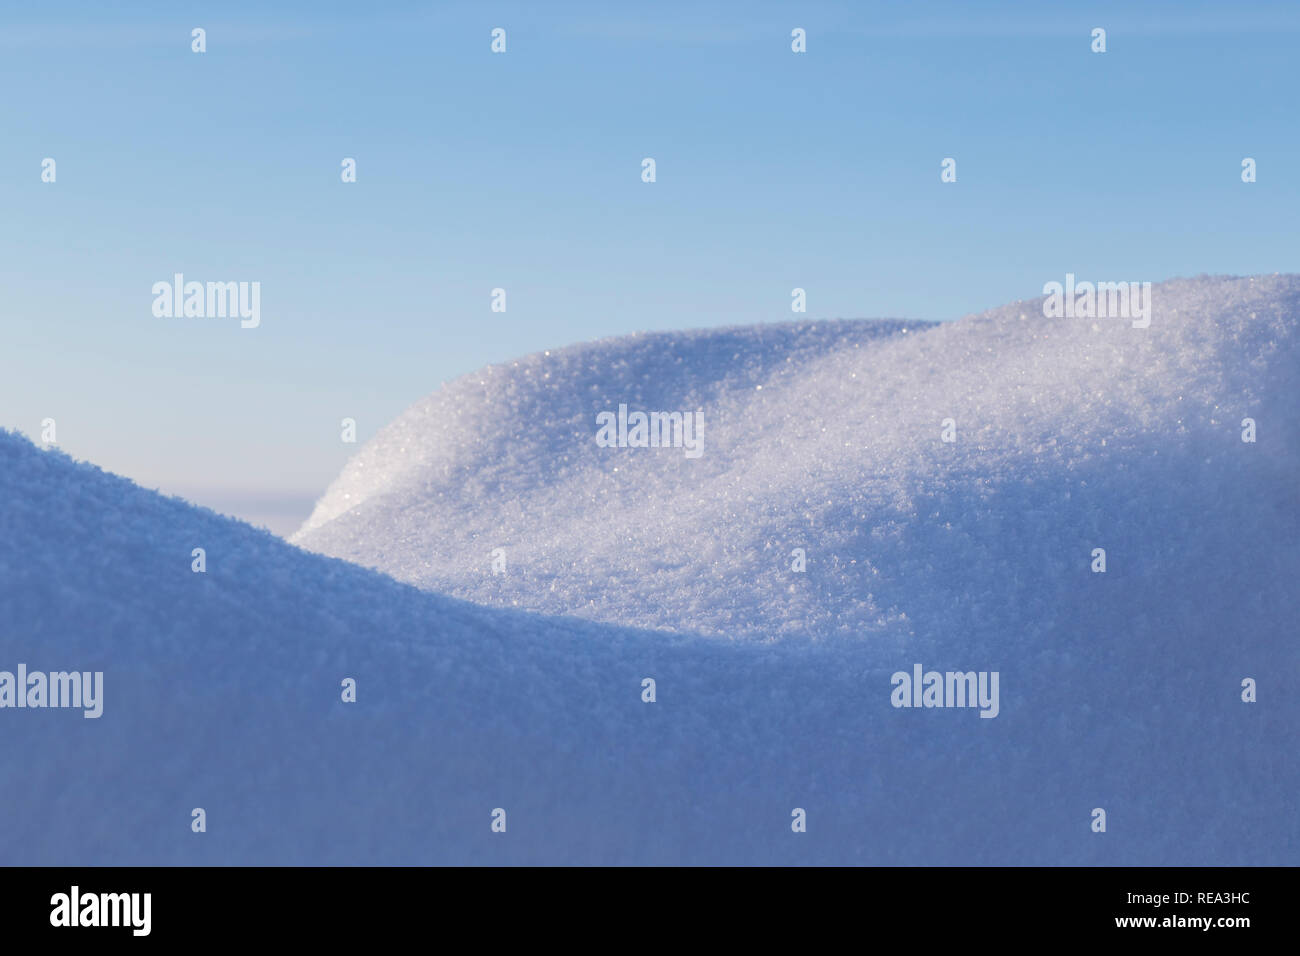 Close-up of fresh shiny snow on a snowdrift on a sunny day in the winter. Clear blue sky. - Stock Image